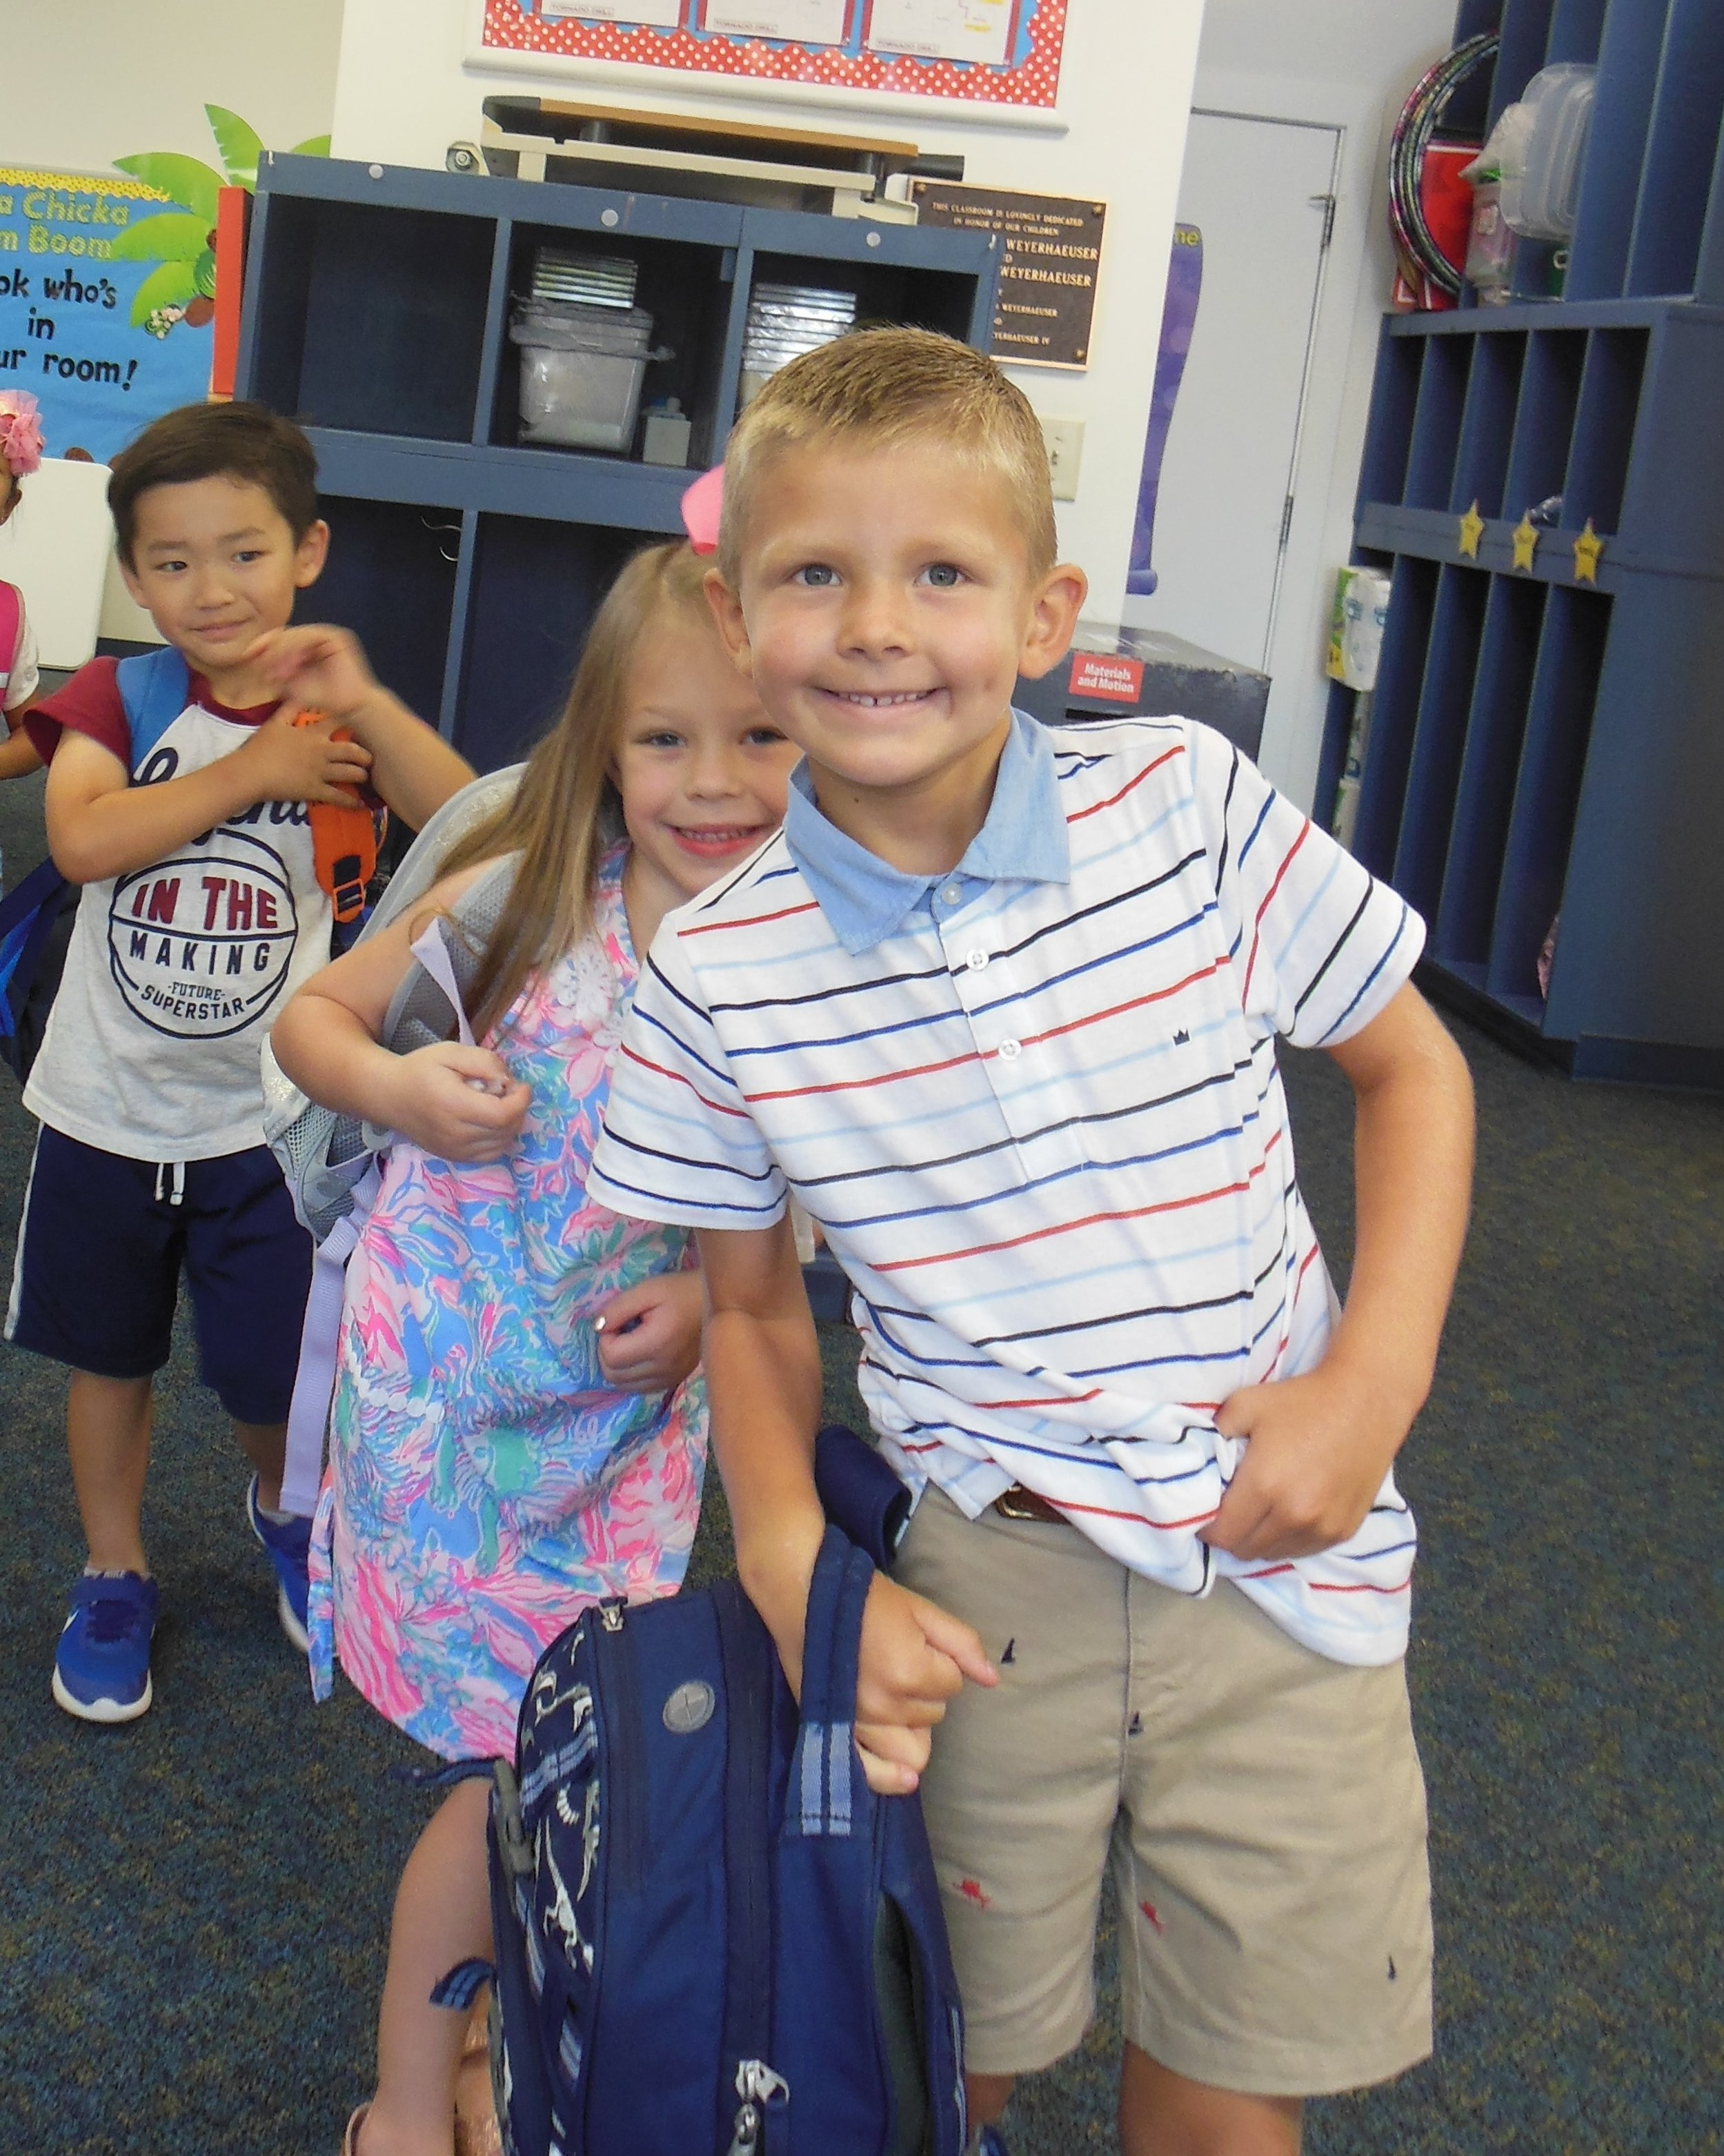 On their first day of kindergarten, these Parrott students are excited to line up for class. Left to right: Josiah Kim, Kalee Barfield, and Noah Brinson.